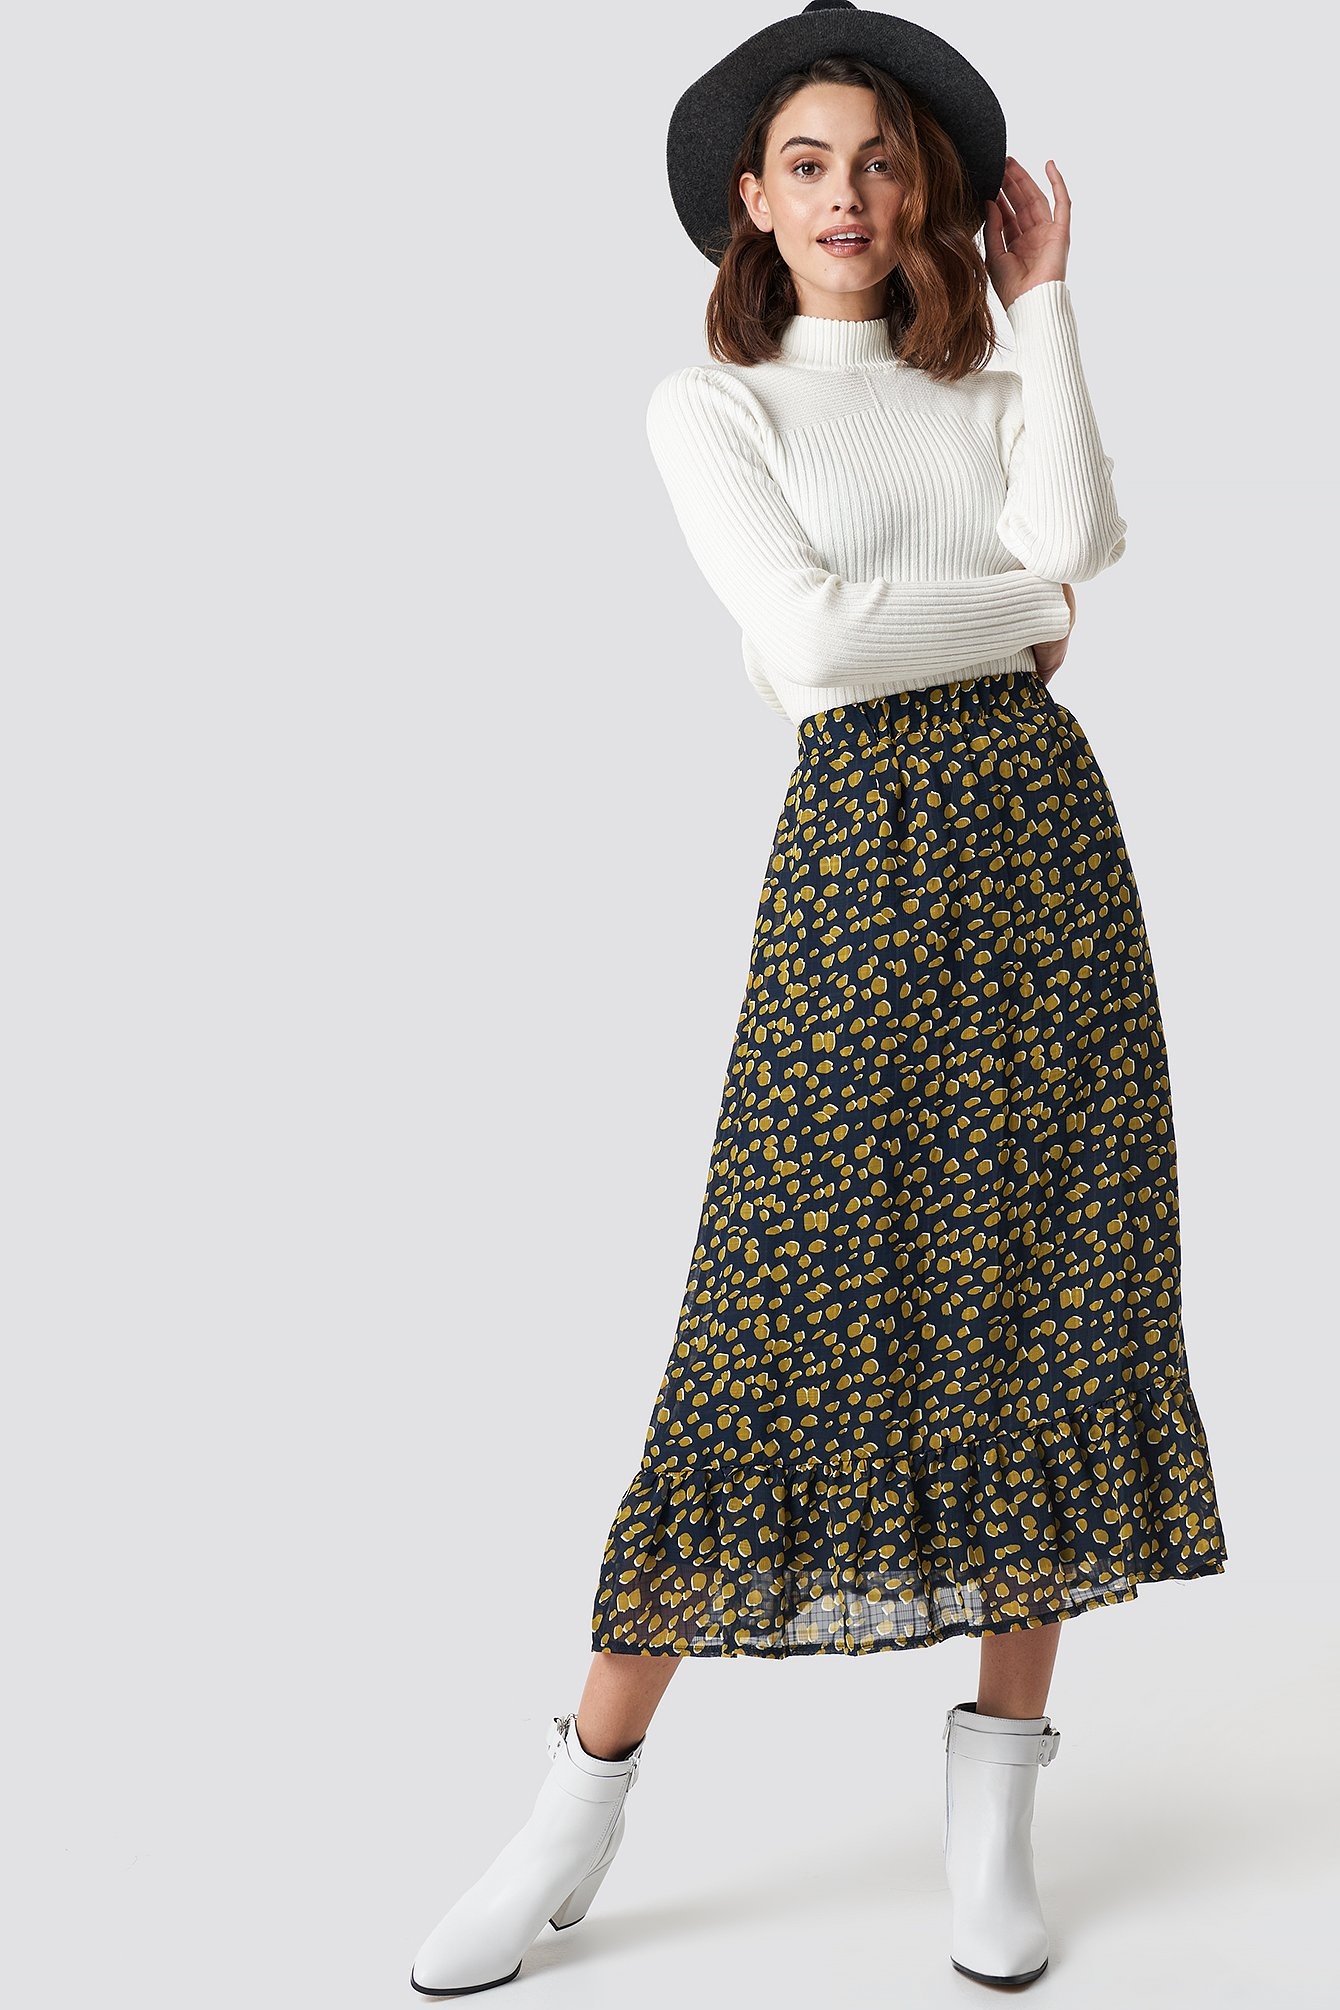 sisters point -  Emmy Skirt 6 - Navy,Yellow